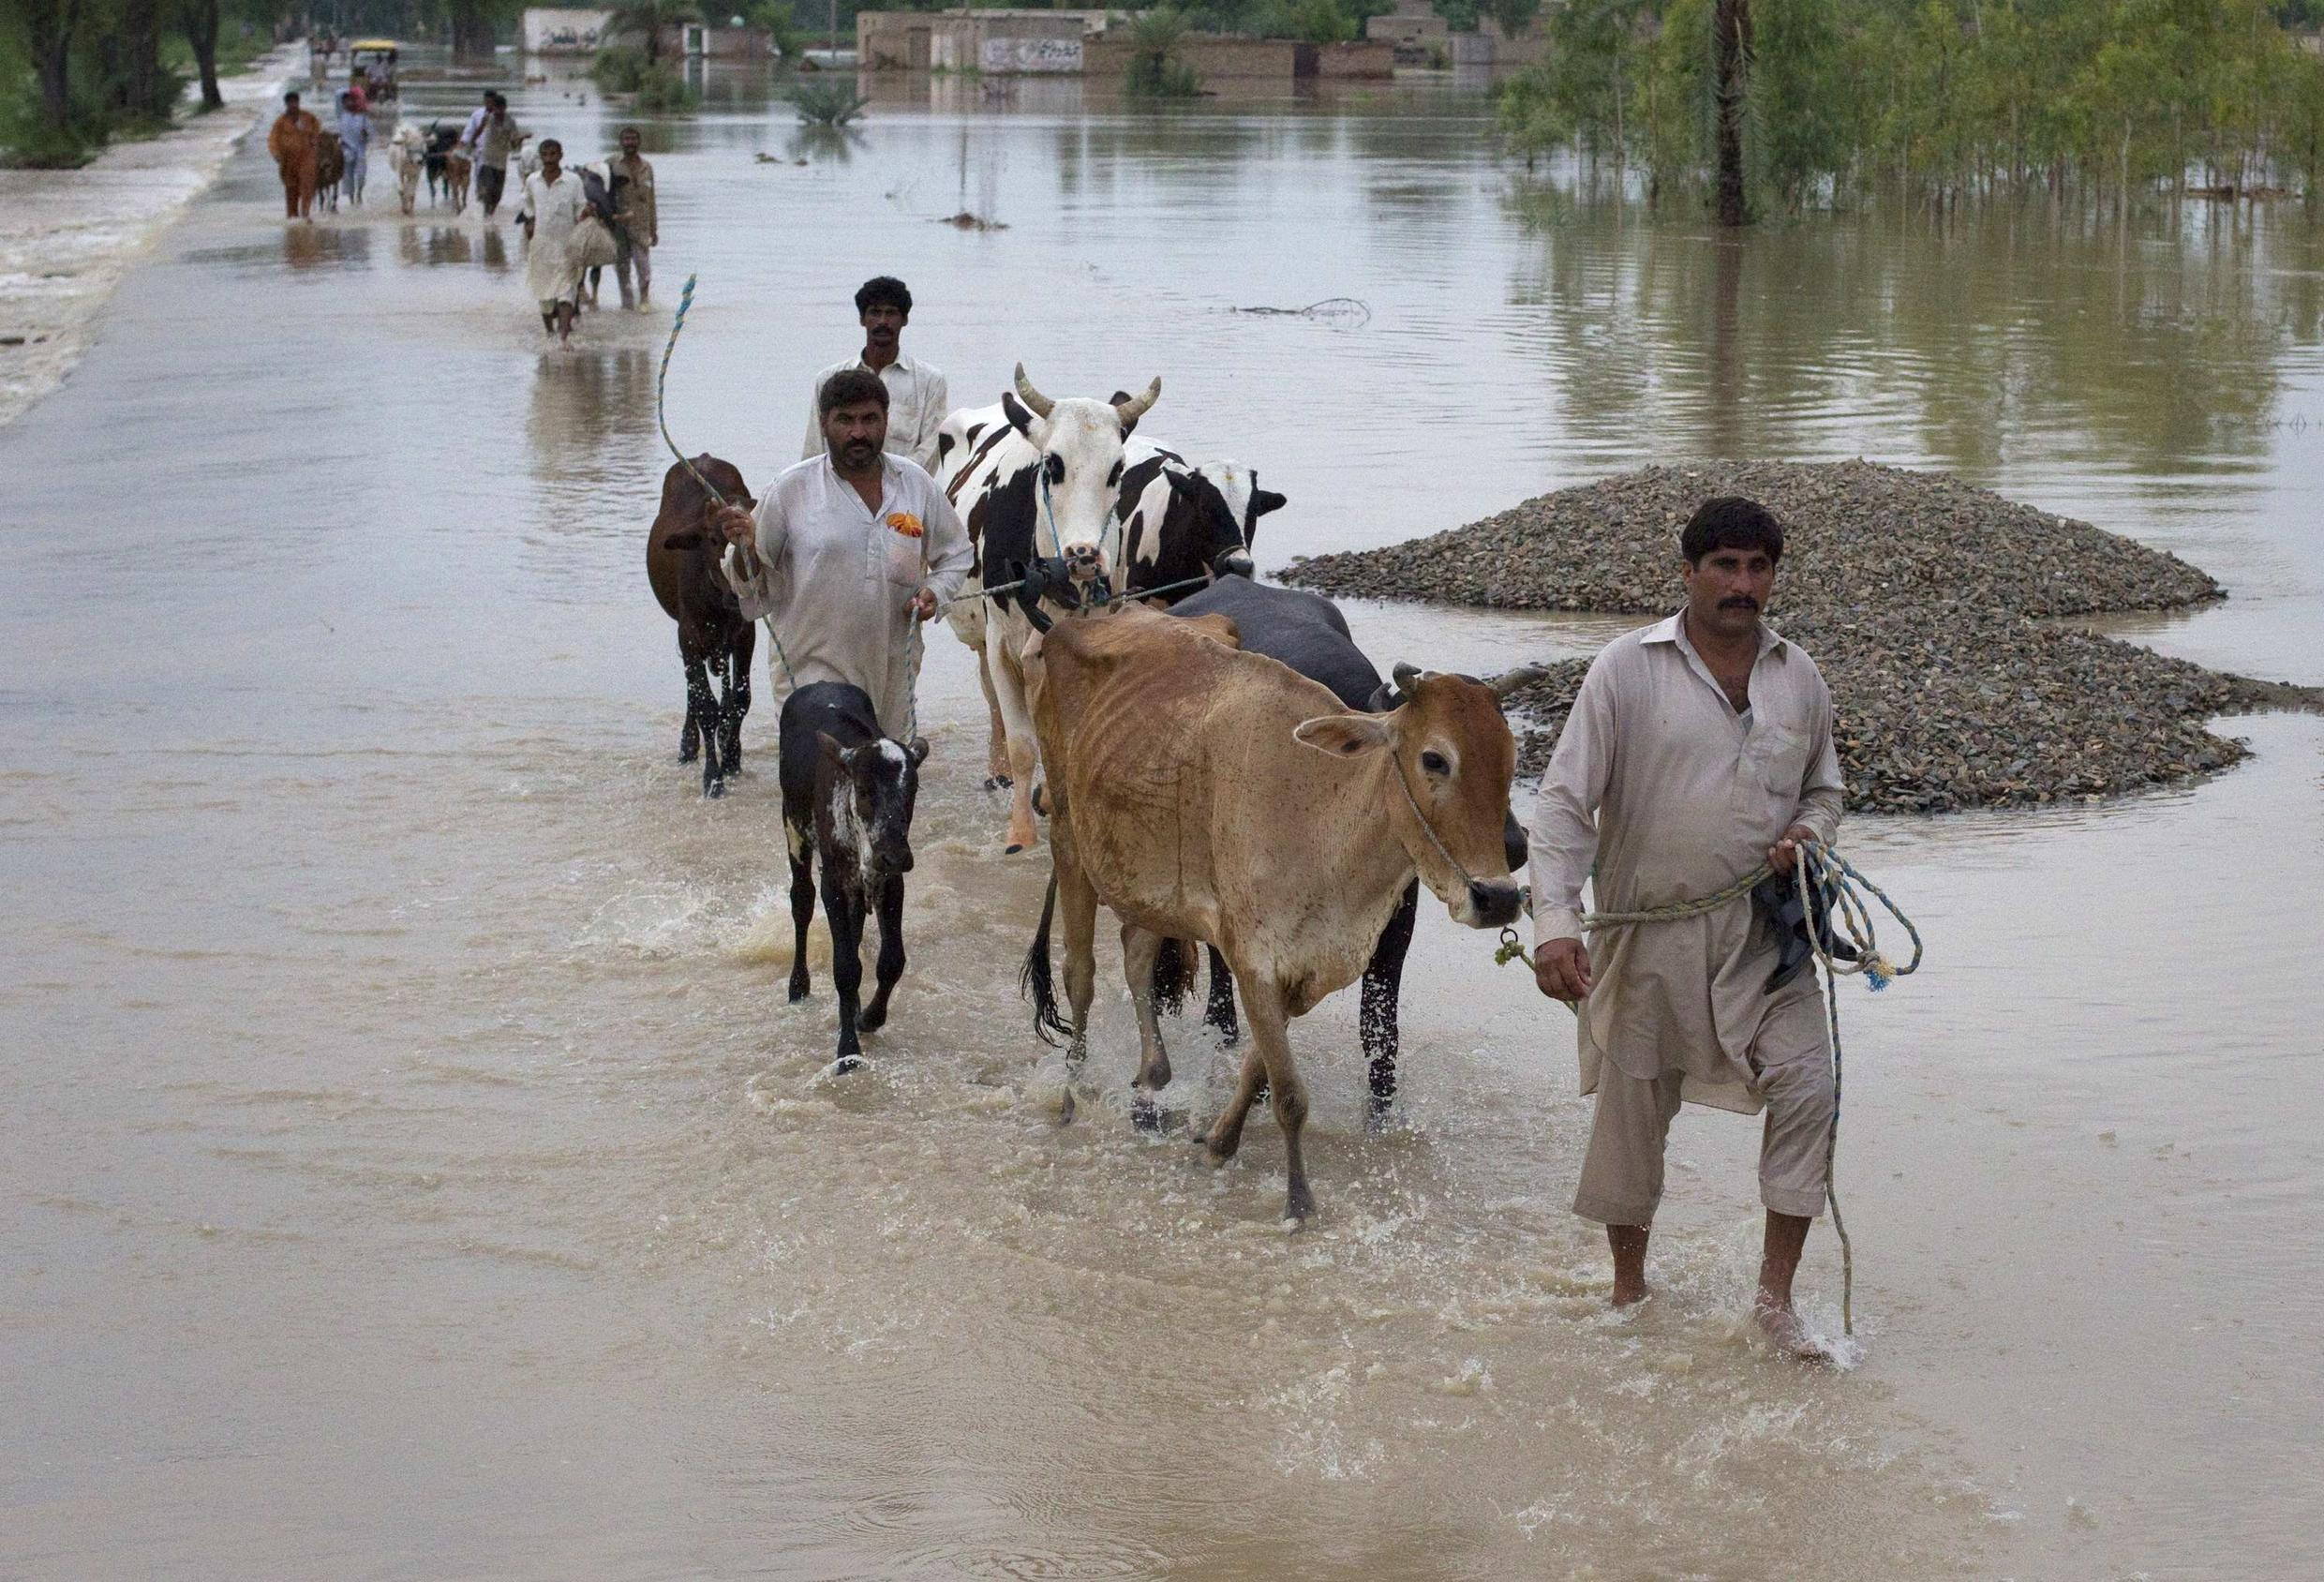 Millions of Pakistanis were displaced by floods in 2010